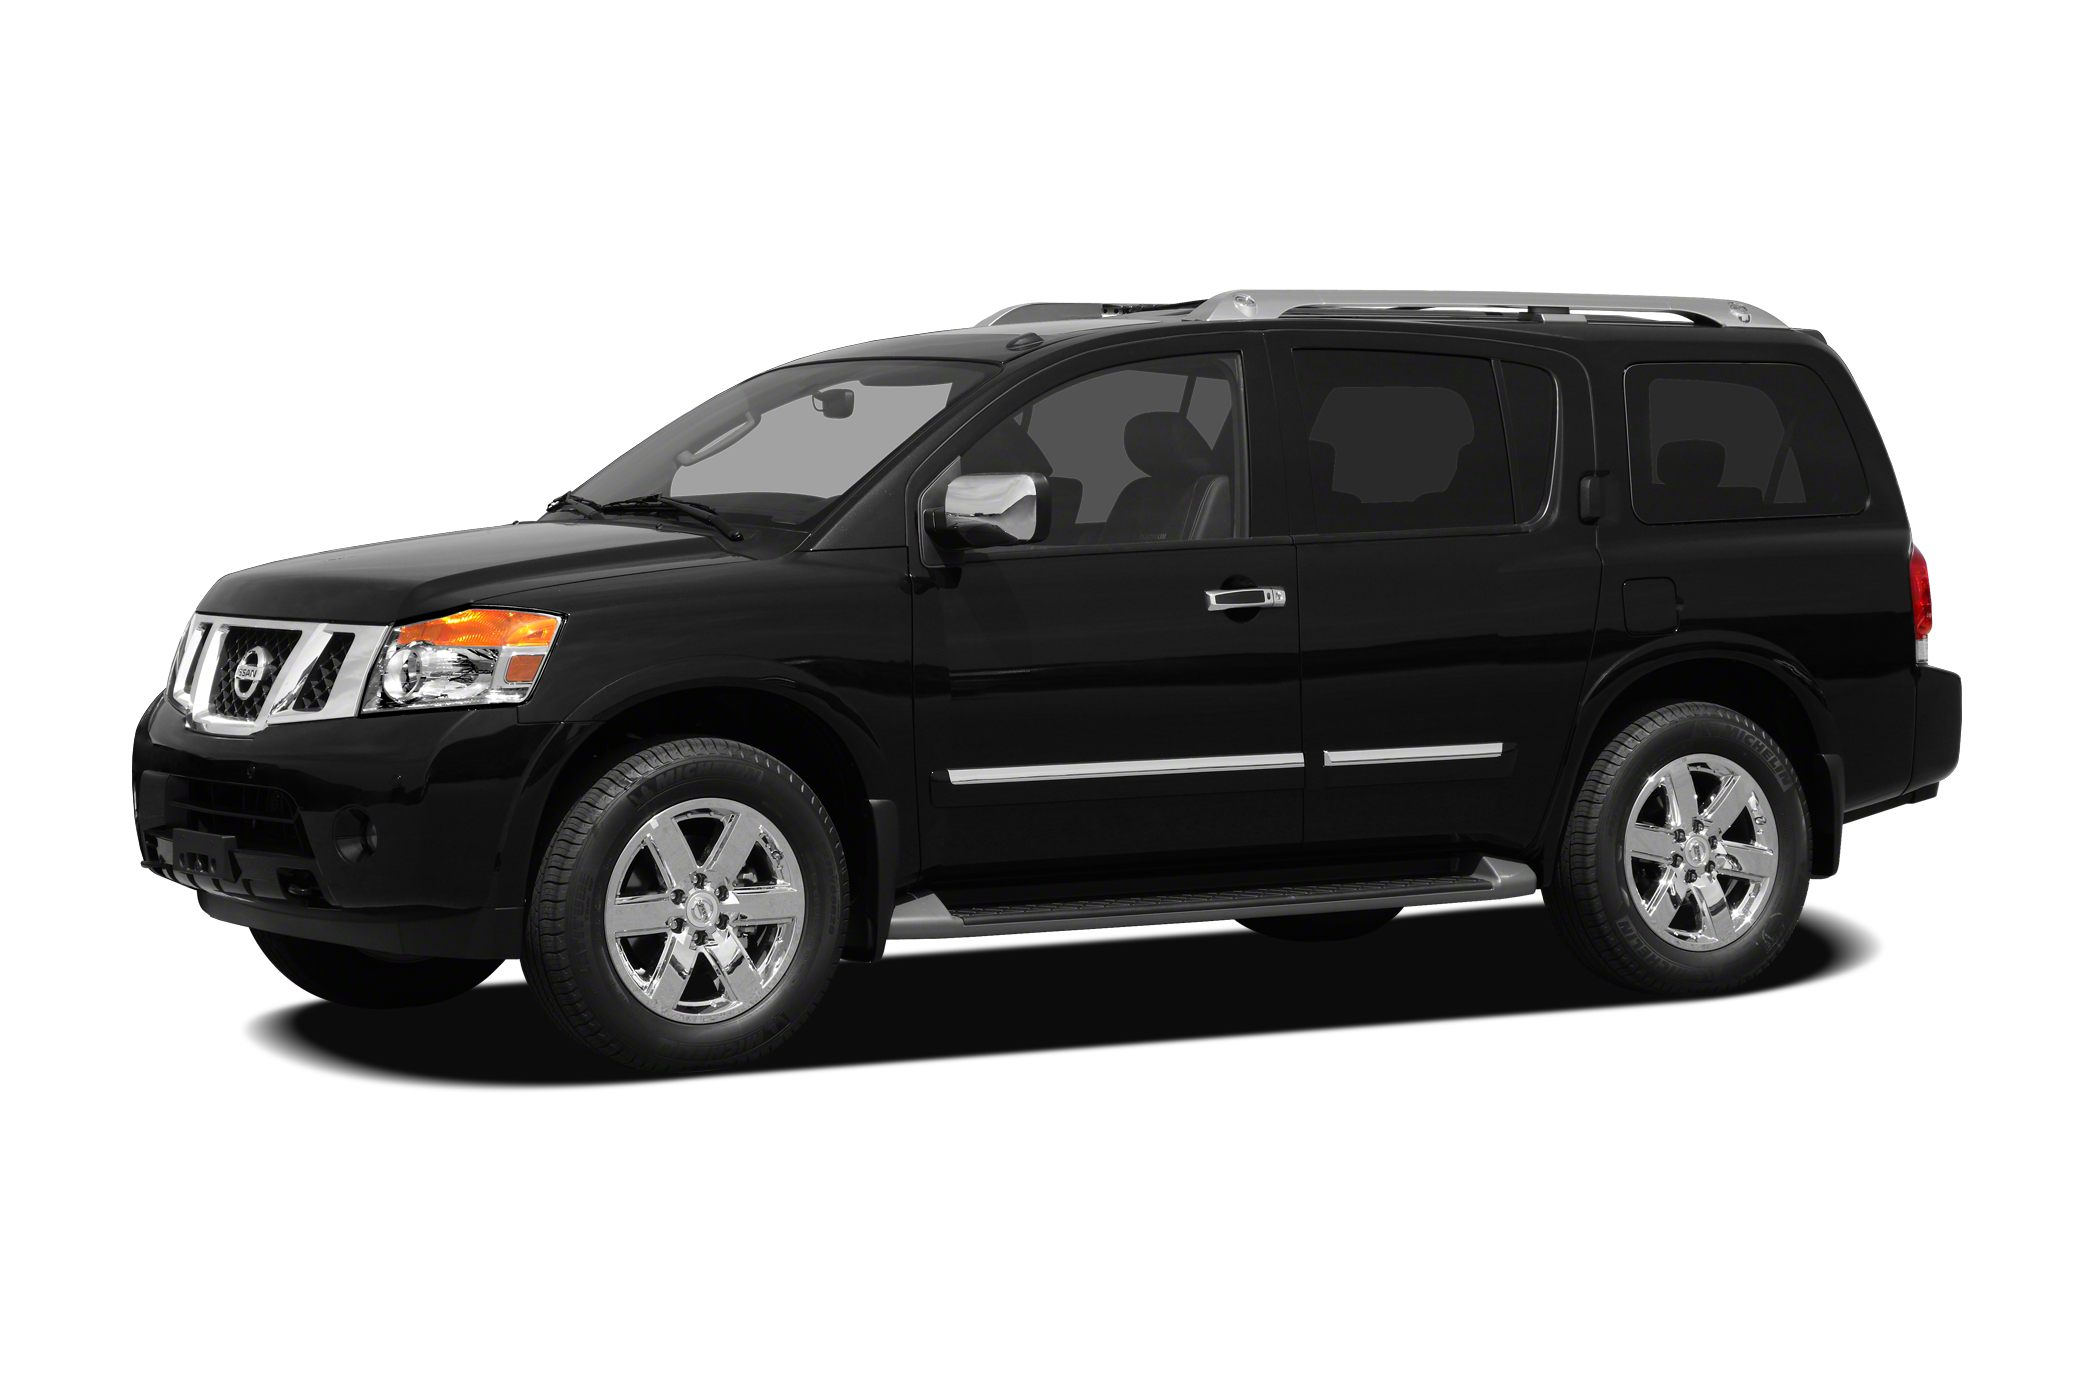 2011 Nissan Armada SL SUV for sale in Albertville for $28,825 with 65,982 miles.